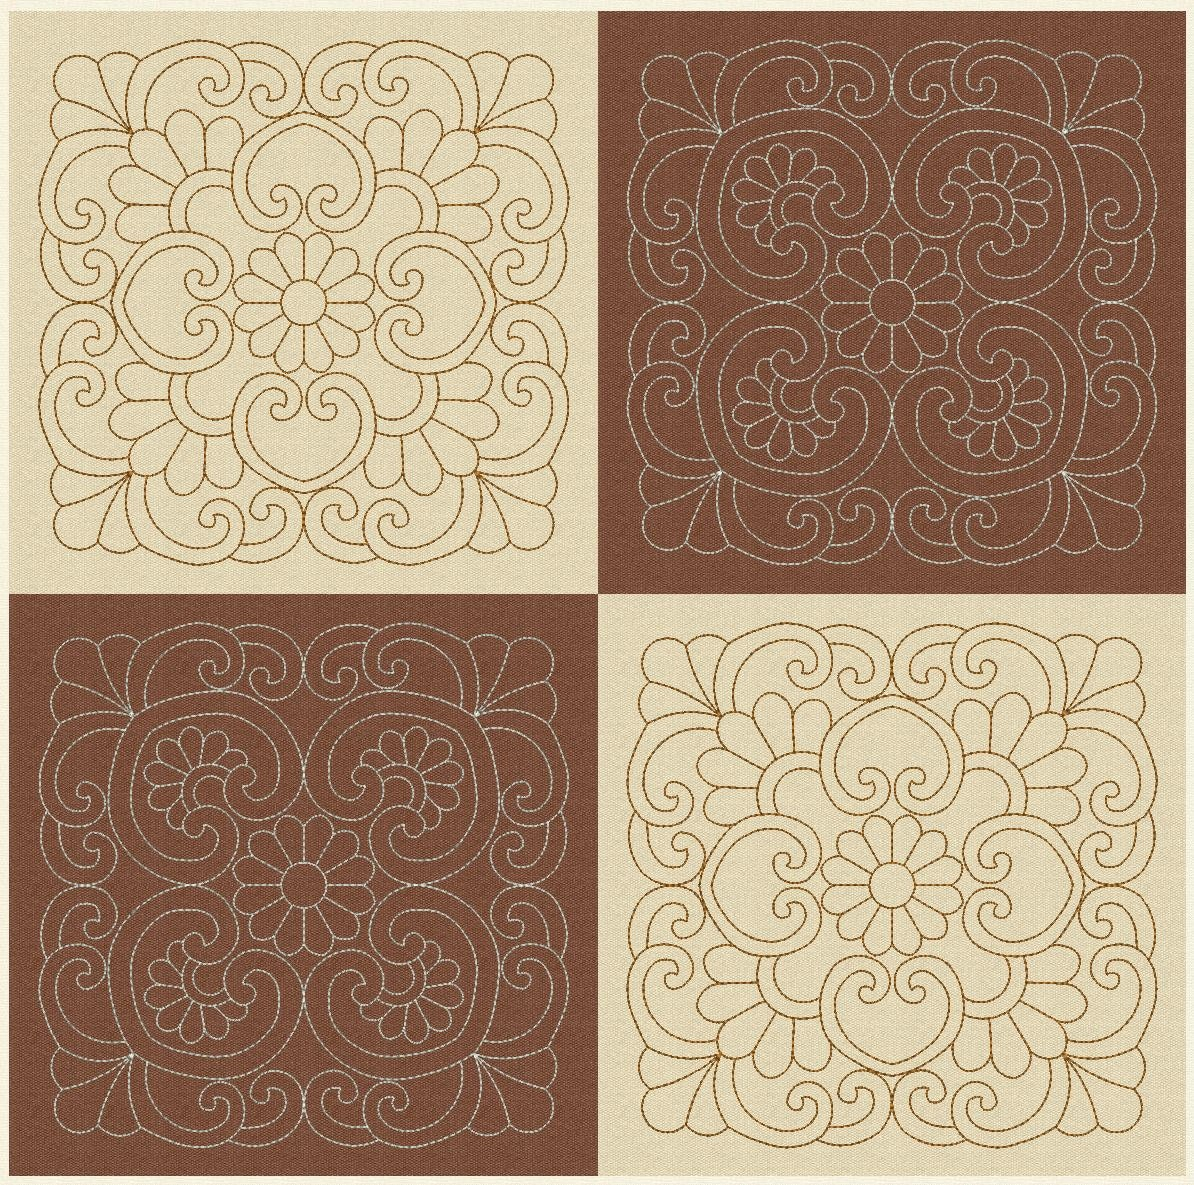 Quilt Blocks Embroidery Designs Quilting embroidery patterns